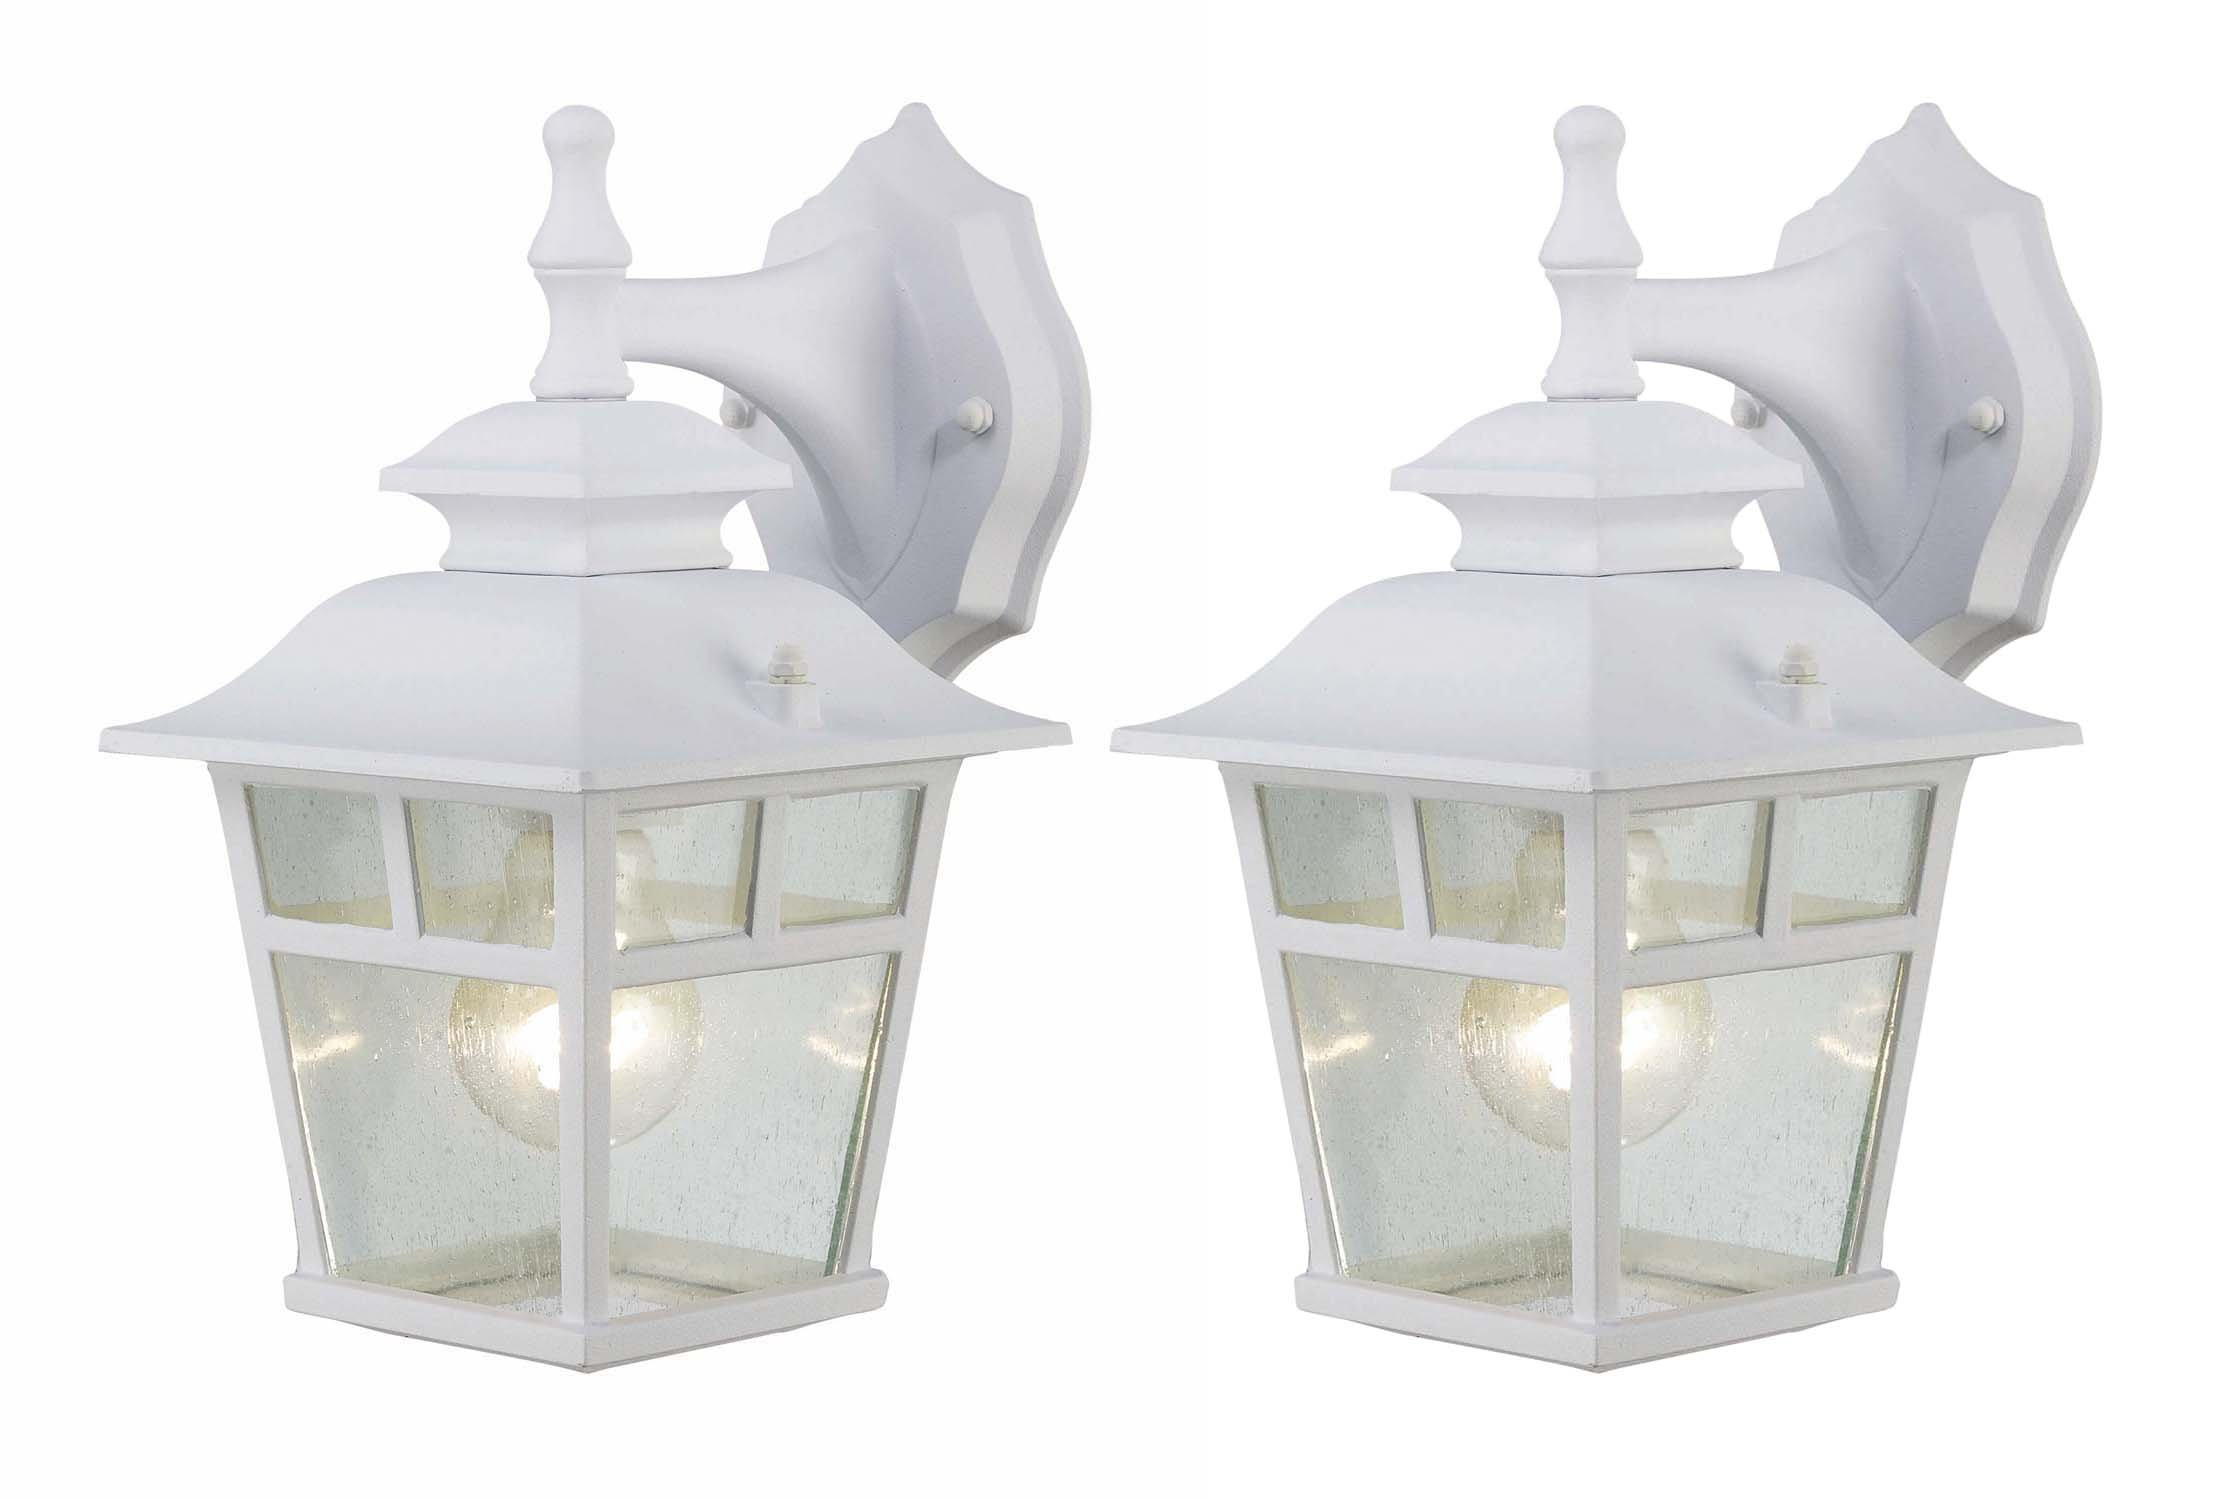 Canarm IOL183TWH-C Fieldhouse Outdoor Lantern Twin Pack, White by Canarm